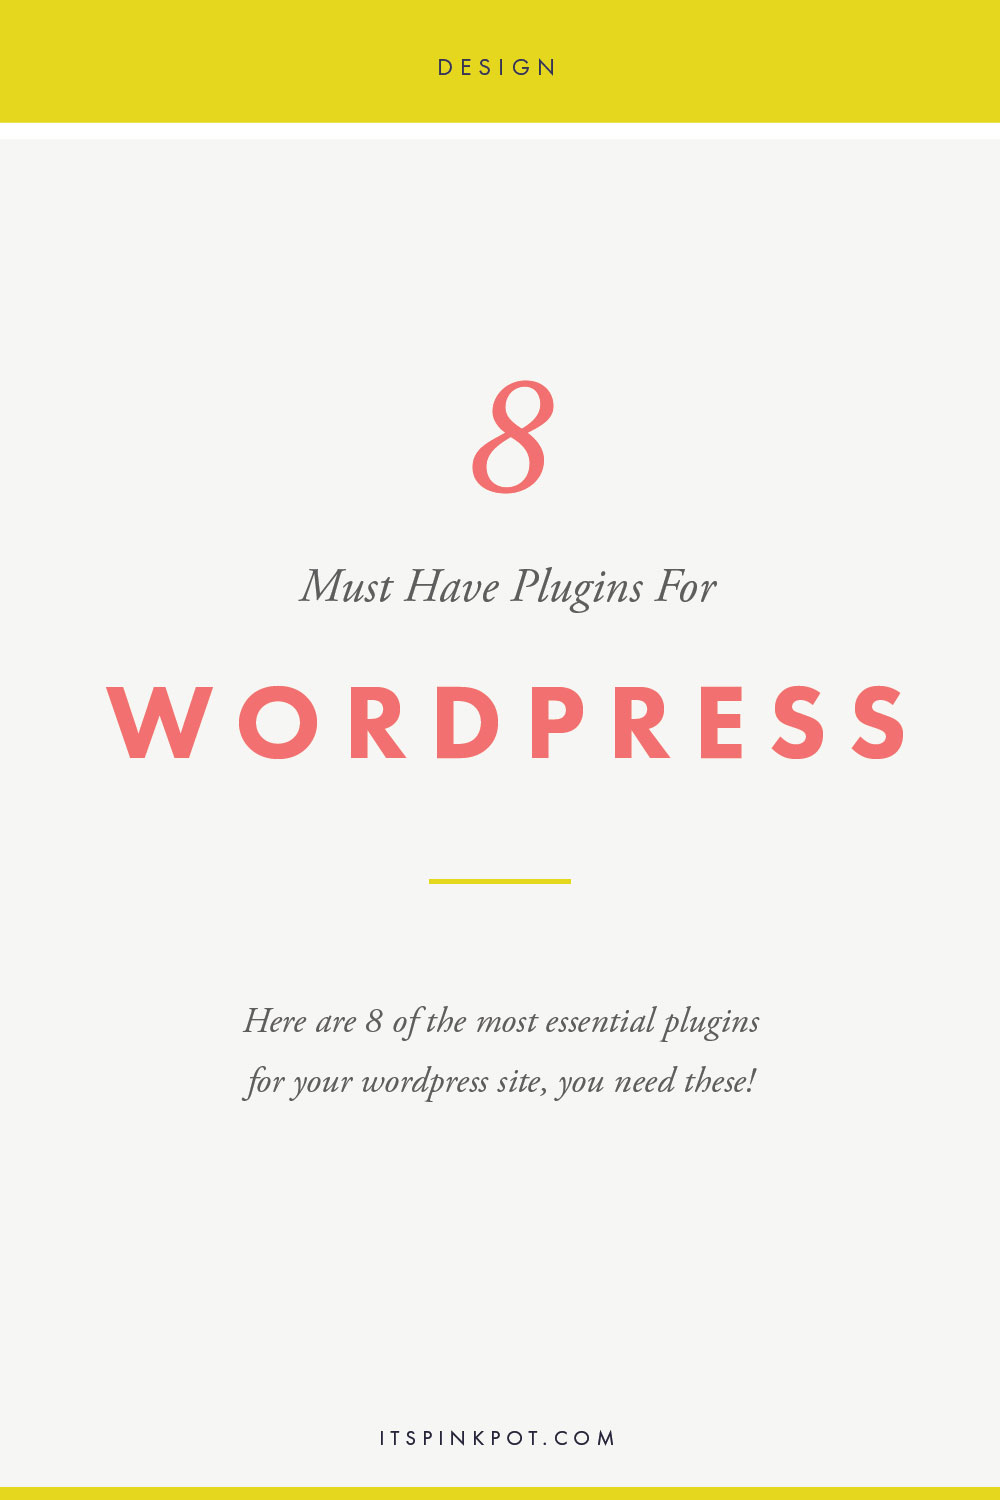 Have you got a new Wordpress site? Here are 8 must have plugins to improve your site! Click here to read more and install them now!